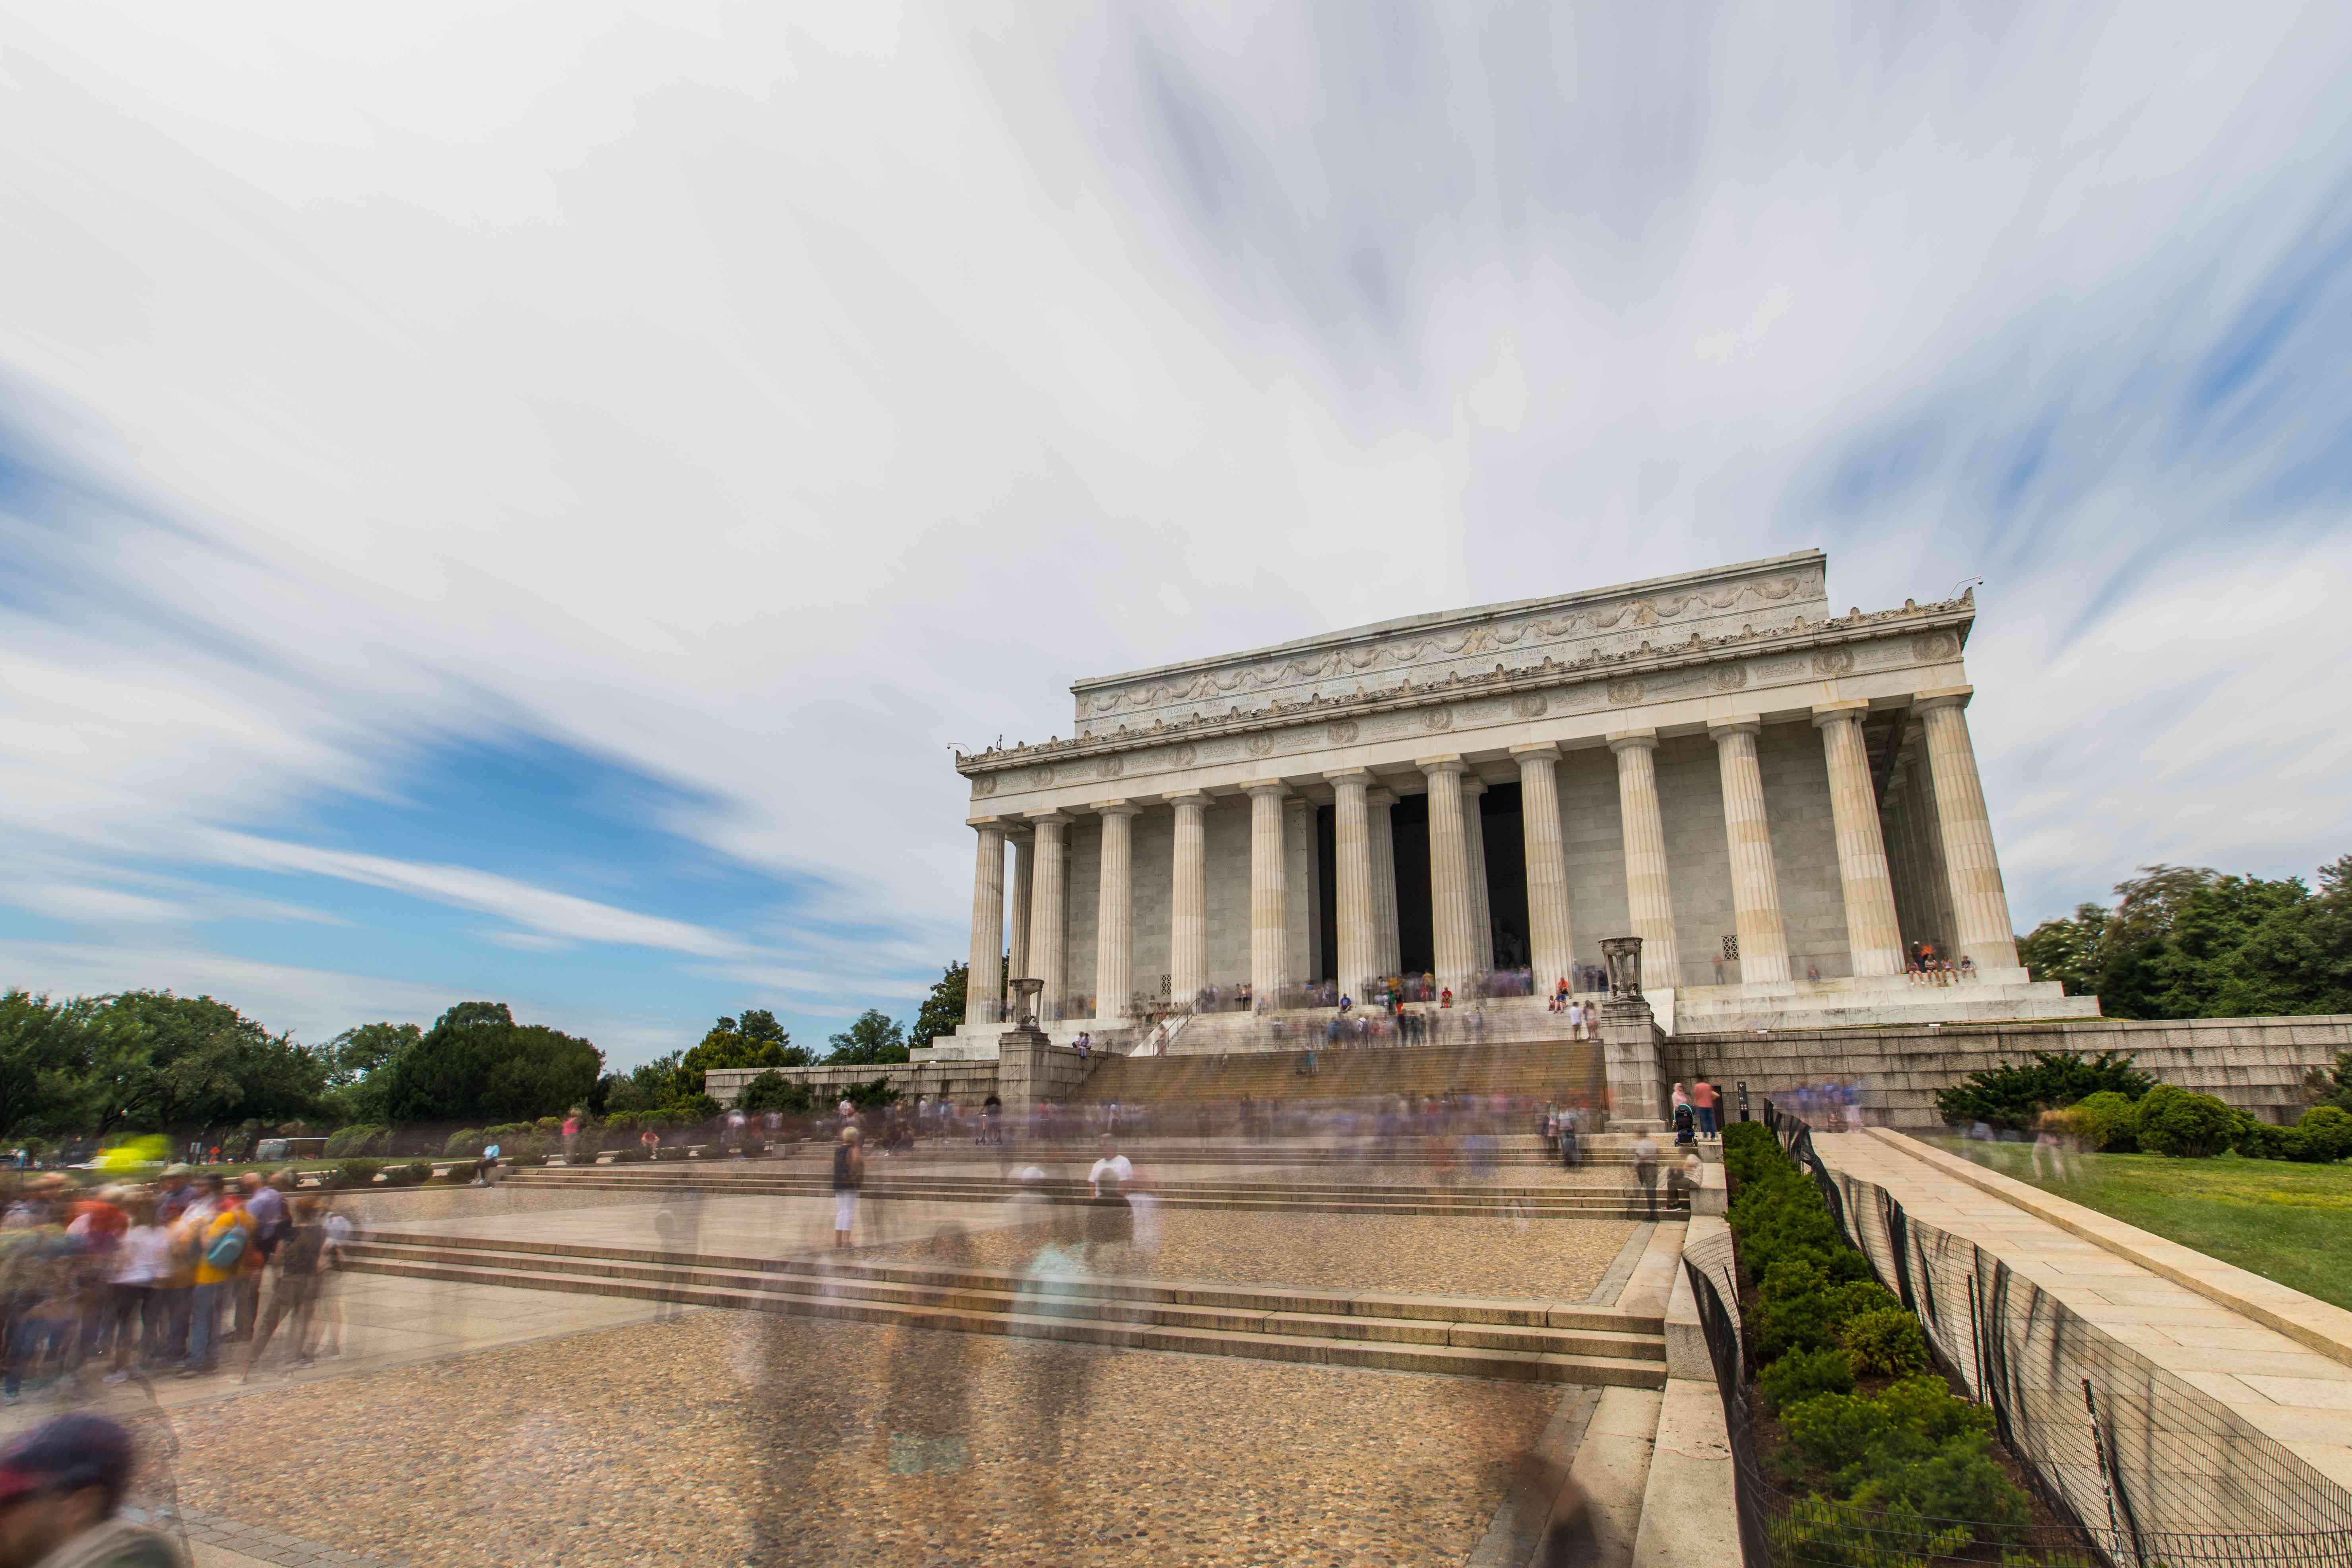 Time lapse shot of people walking past the Lincoln Memorial